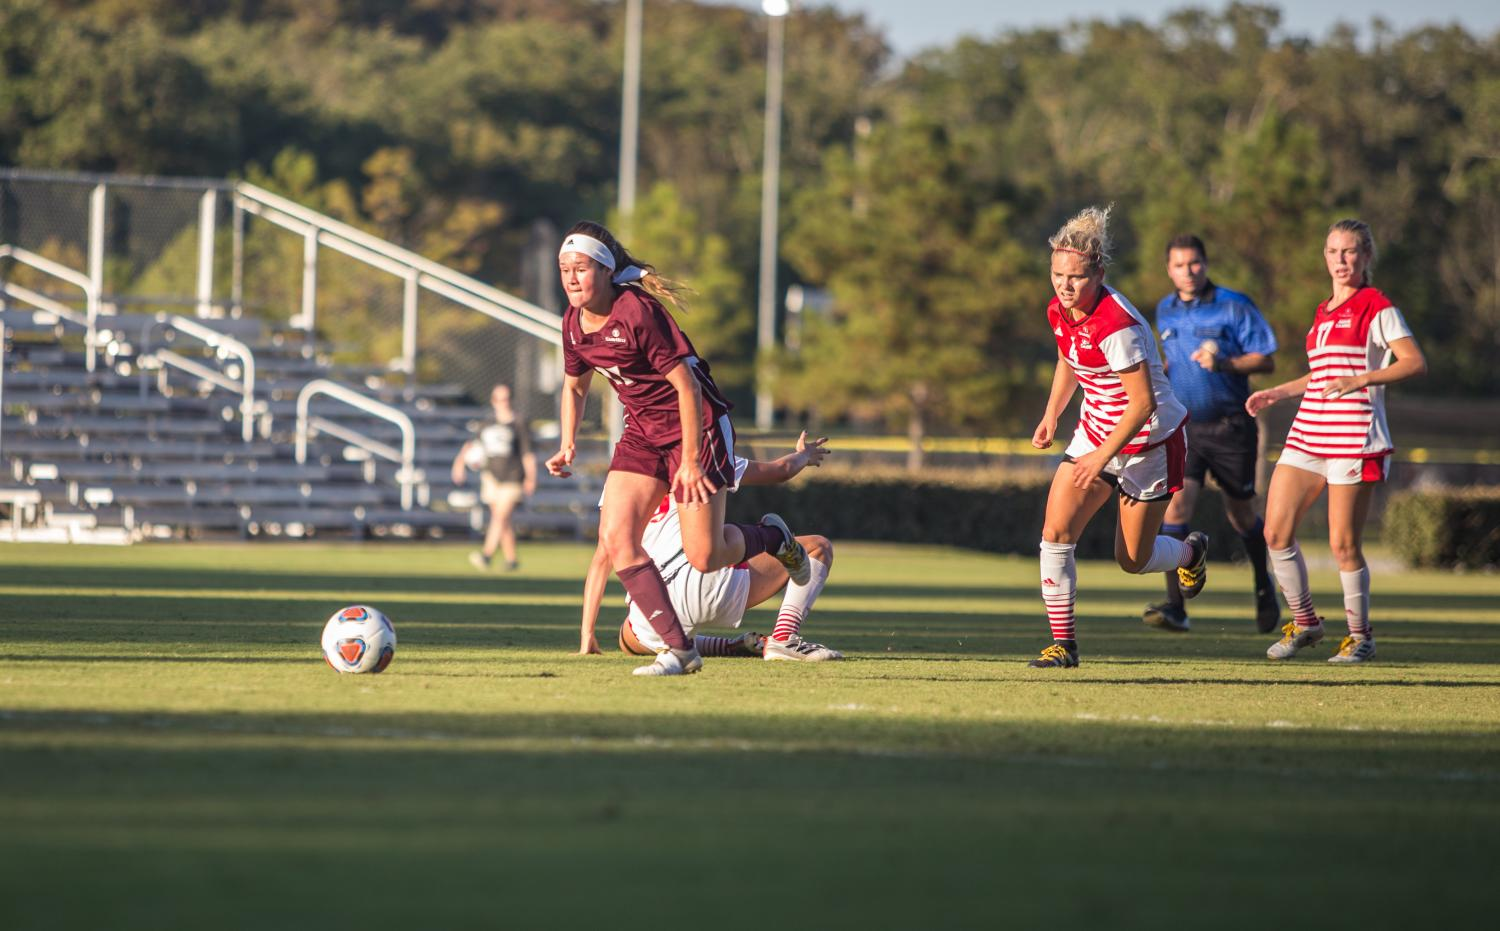 WORK THOSE CLEATS: Taylor Altieri runs down the field in soccer's game against ULL.